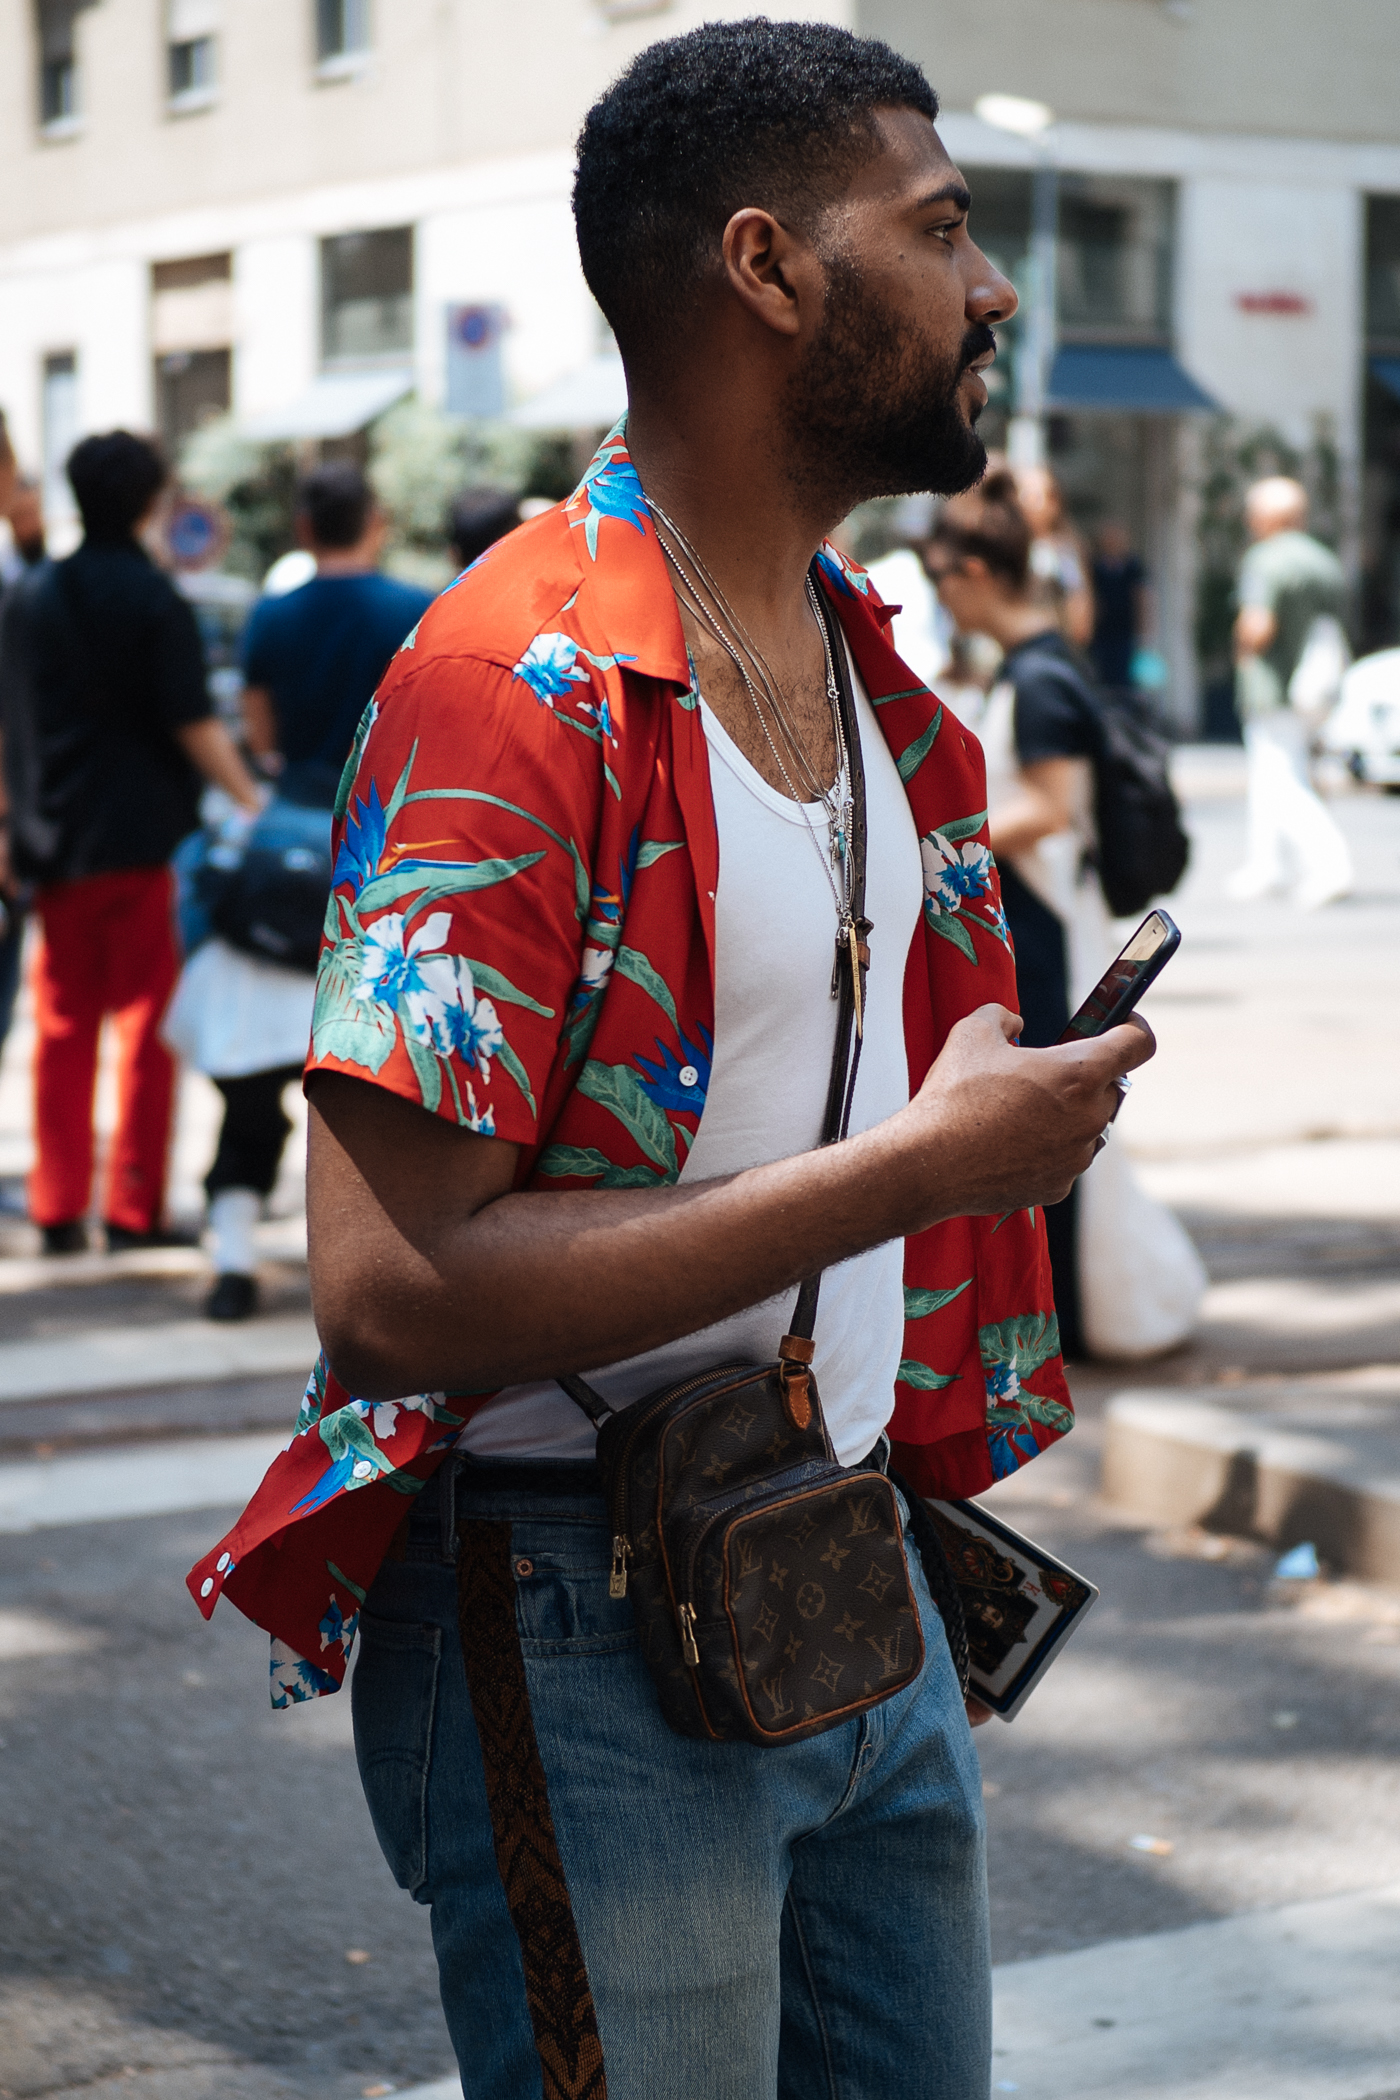 Summer daze at Milano Moda Uomo, captured on my  OM-D E-M1 Mark II.